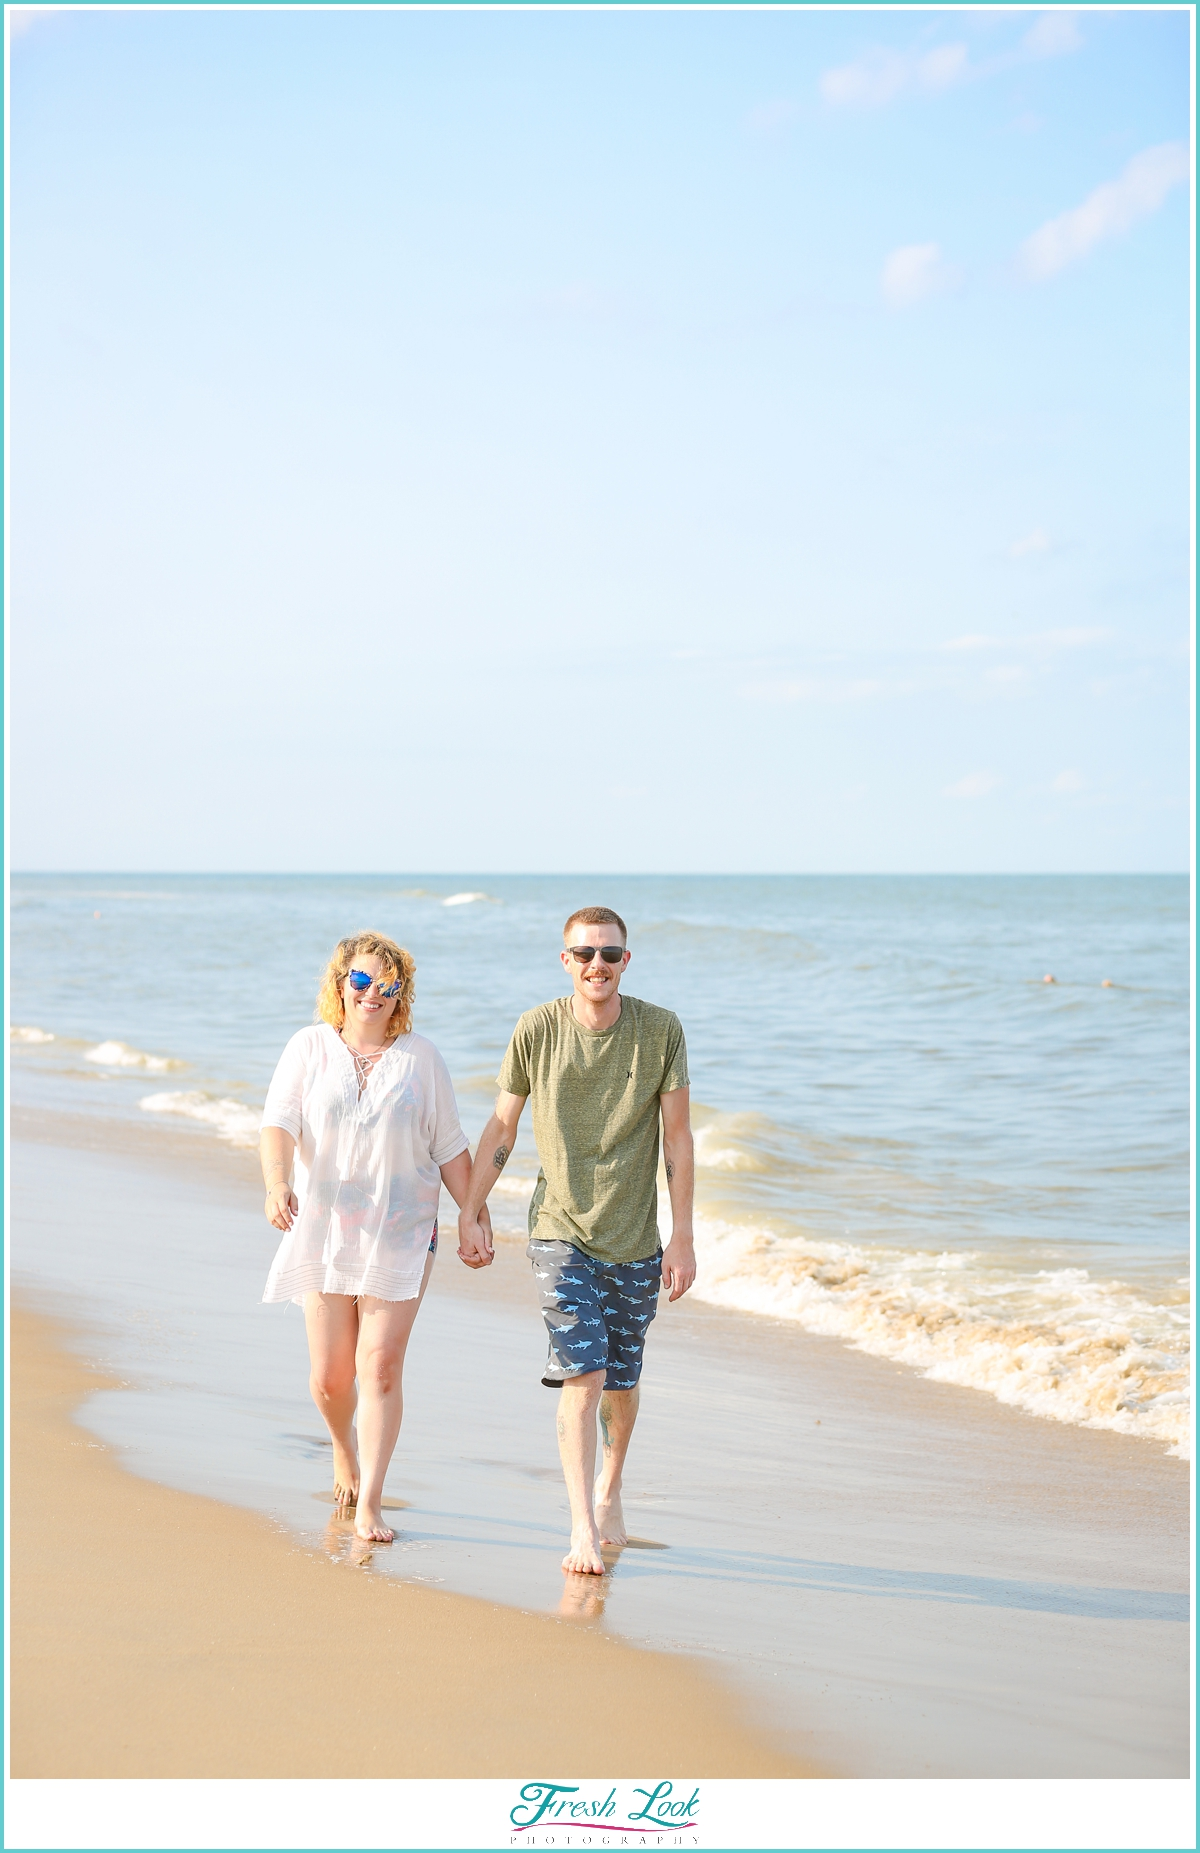 romantic walk on the beach together